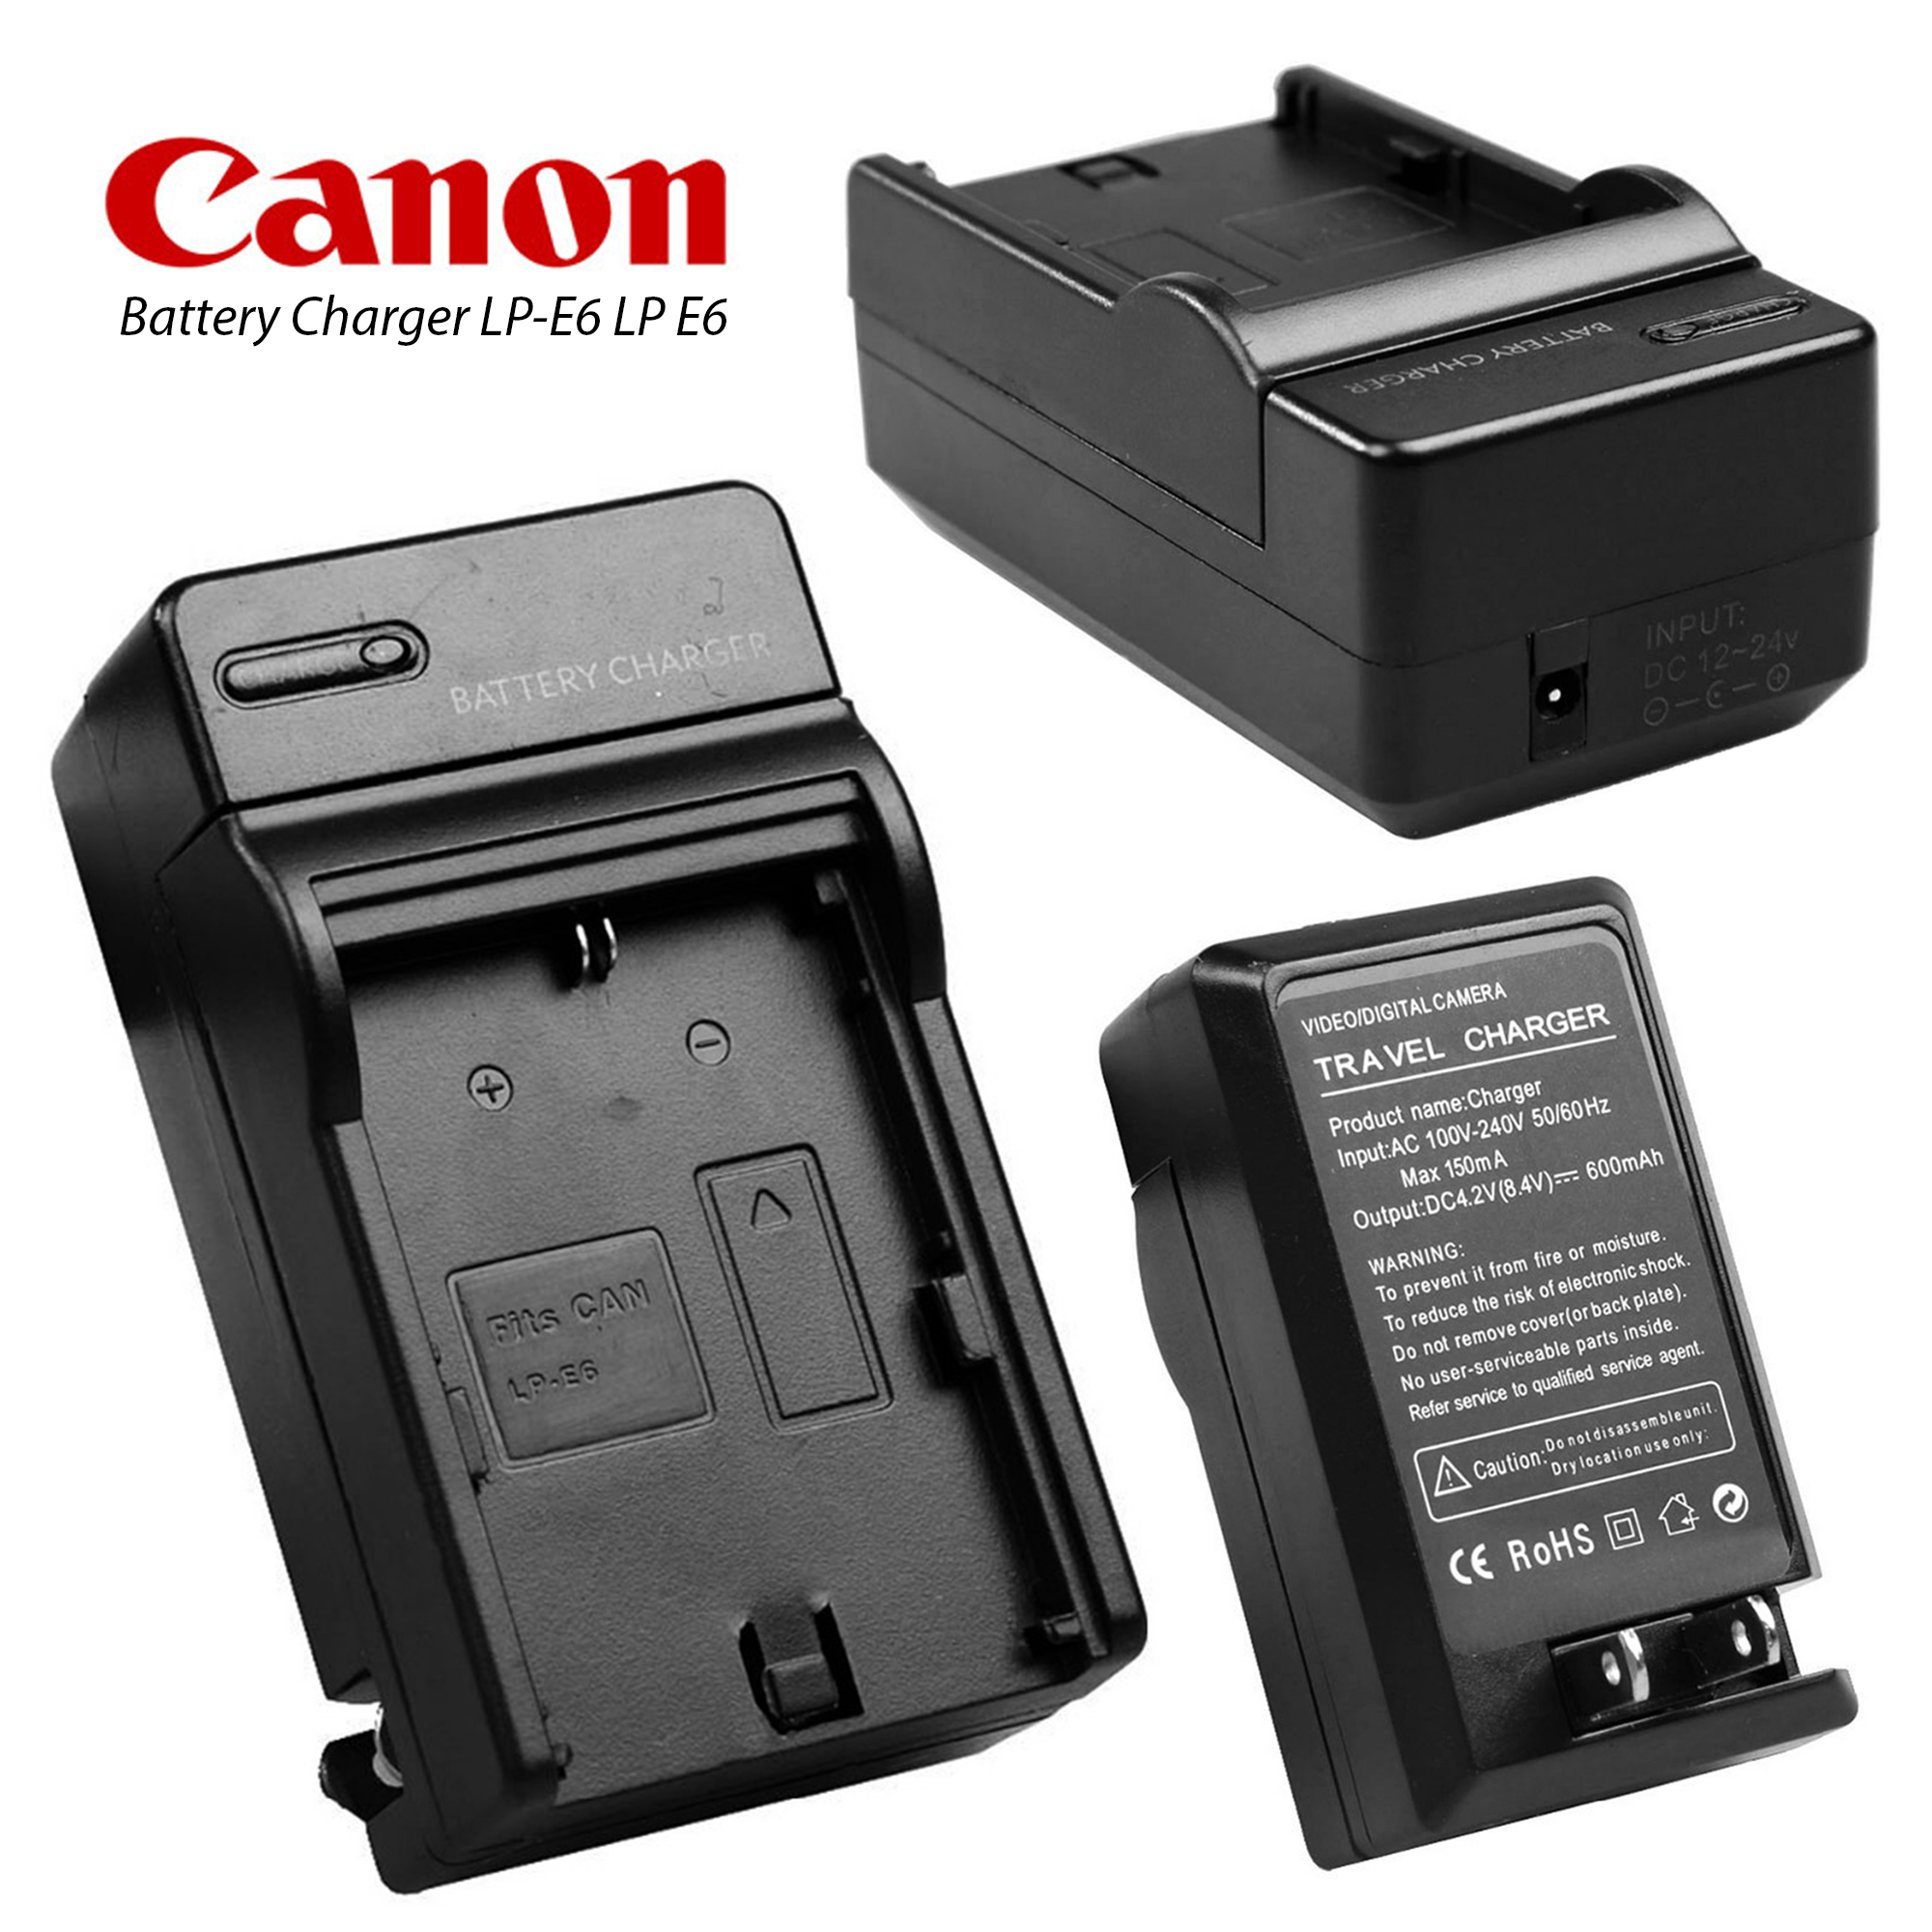 ที่ชาร์จ Battery Charger LP-E6 LP E6 For CAN0N 5DIII 5DII 60D 60Da 70D 6D 7D 7DSV Camera Battery